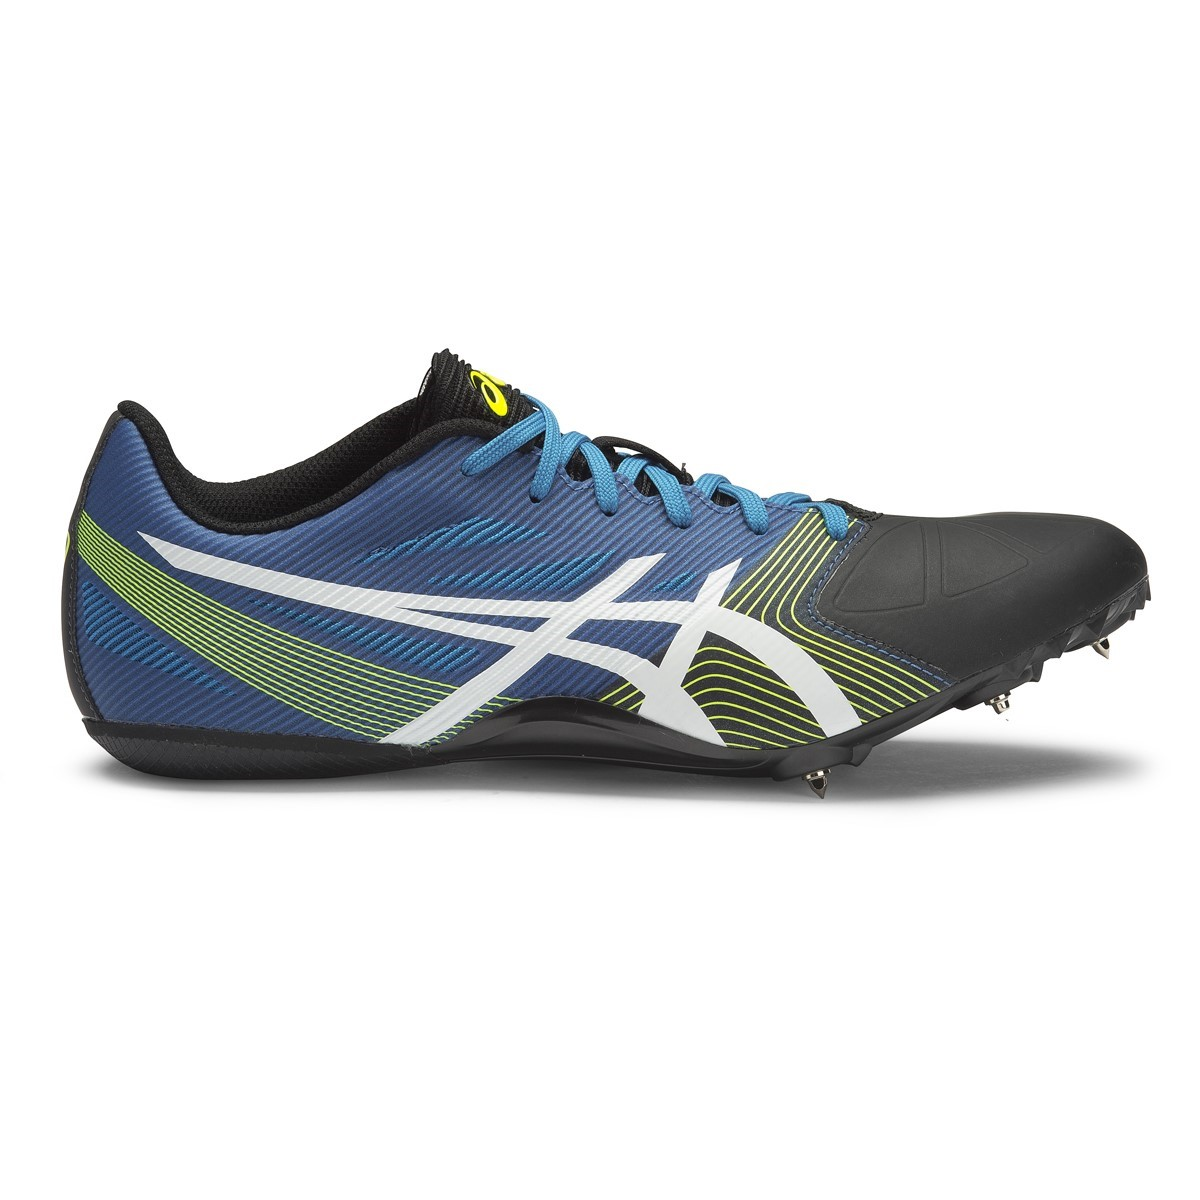 Asics Hyper Sprint 6 - Mens Sprint Spikes - Methyl Blue/White/Flash Yellow